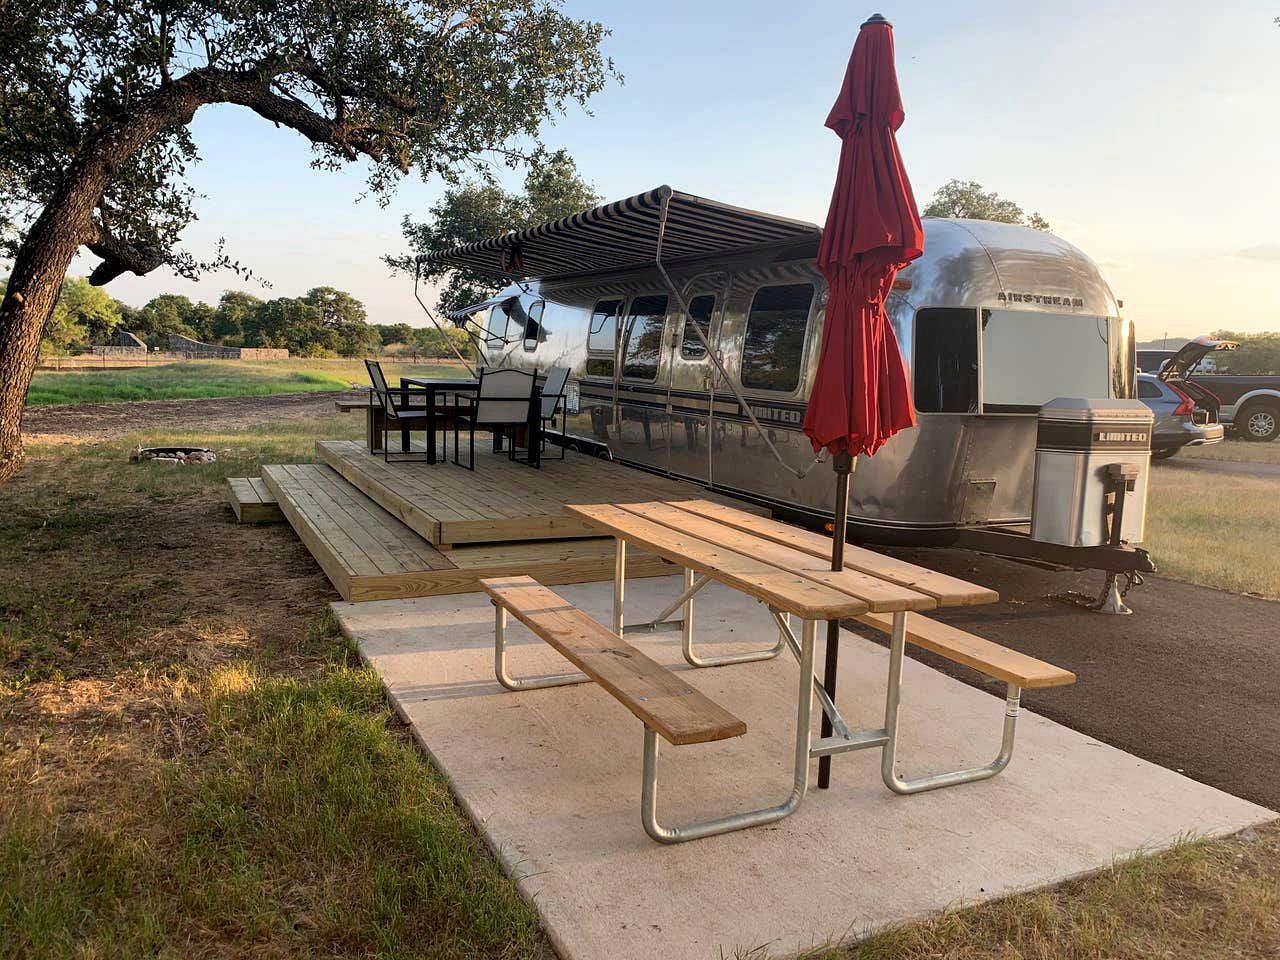 Take a luxury camping trip near Austin and stay in this fully renovated vintage airstream rental.